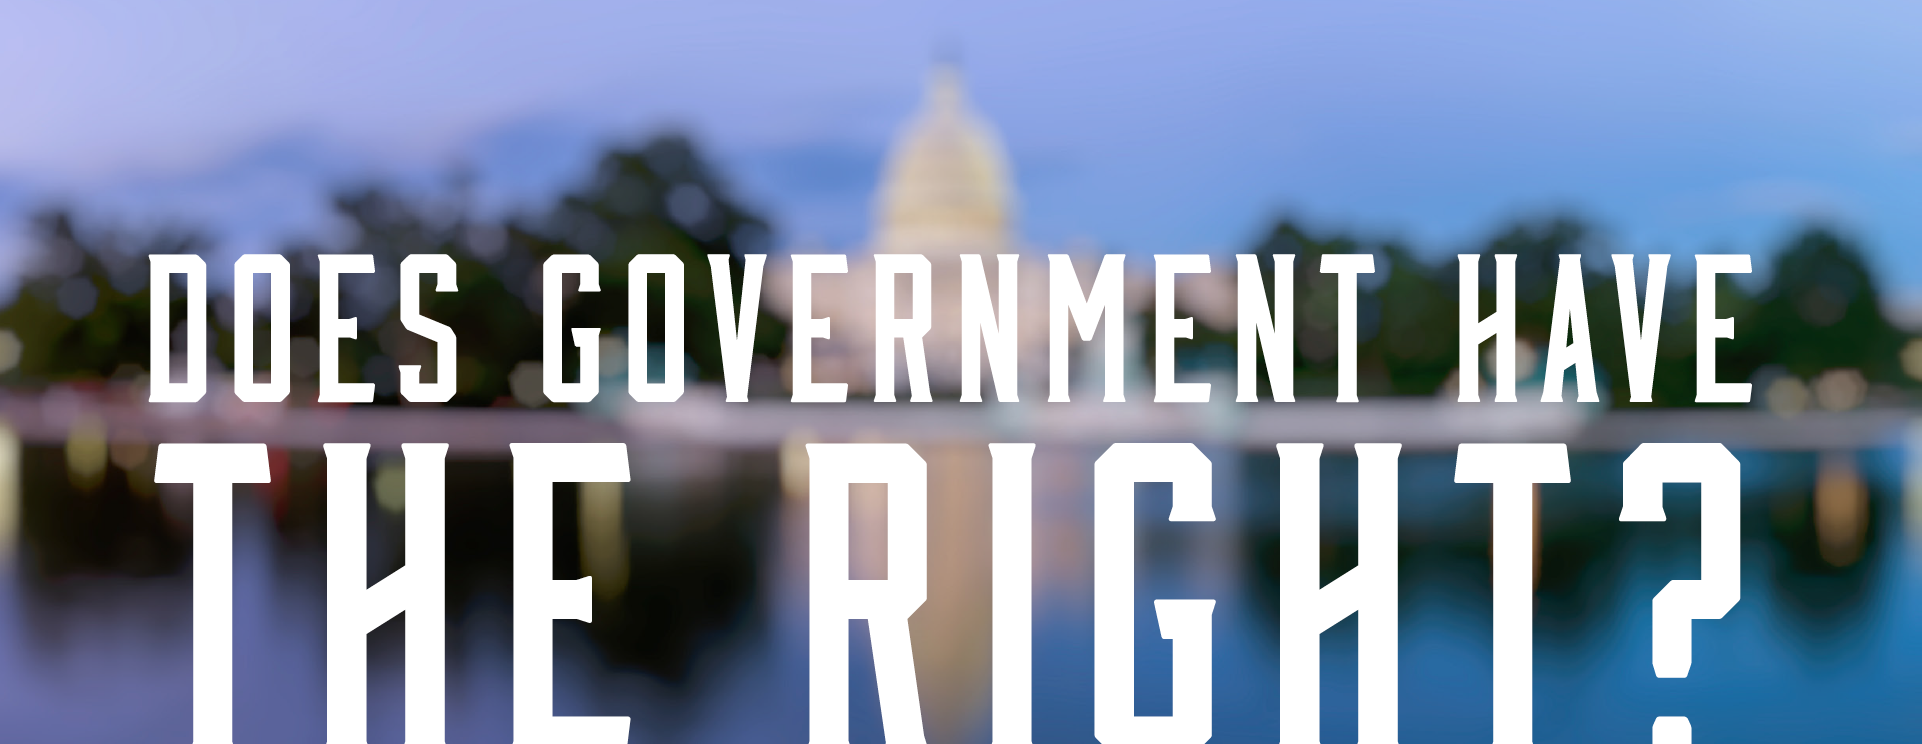 Does Government Have the Right?